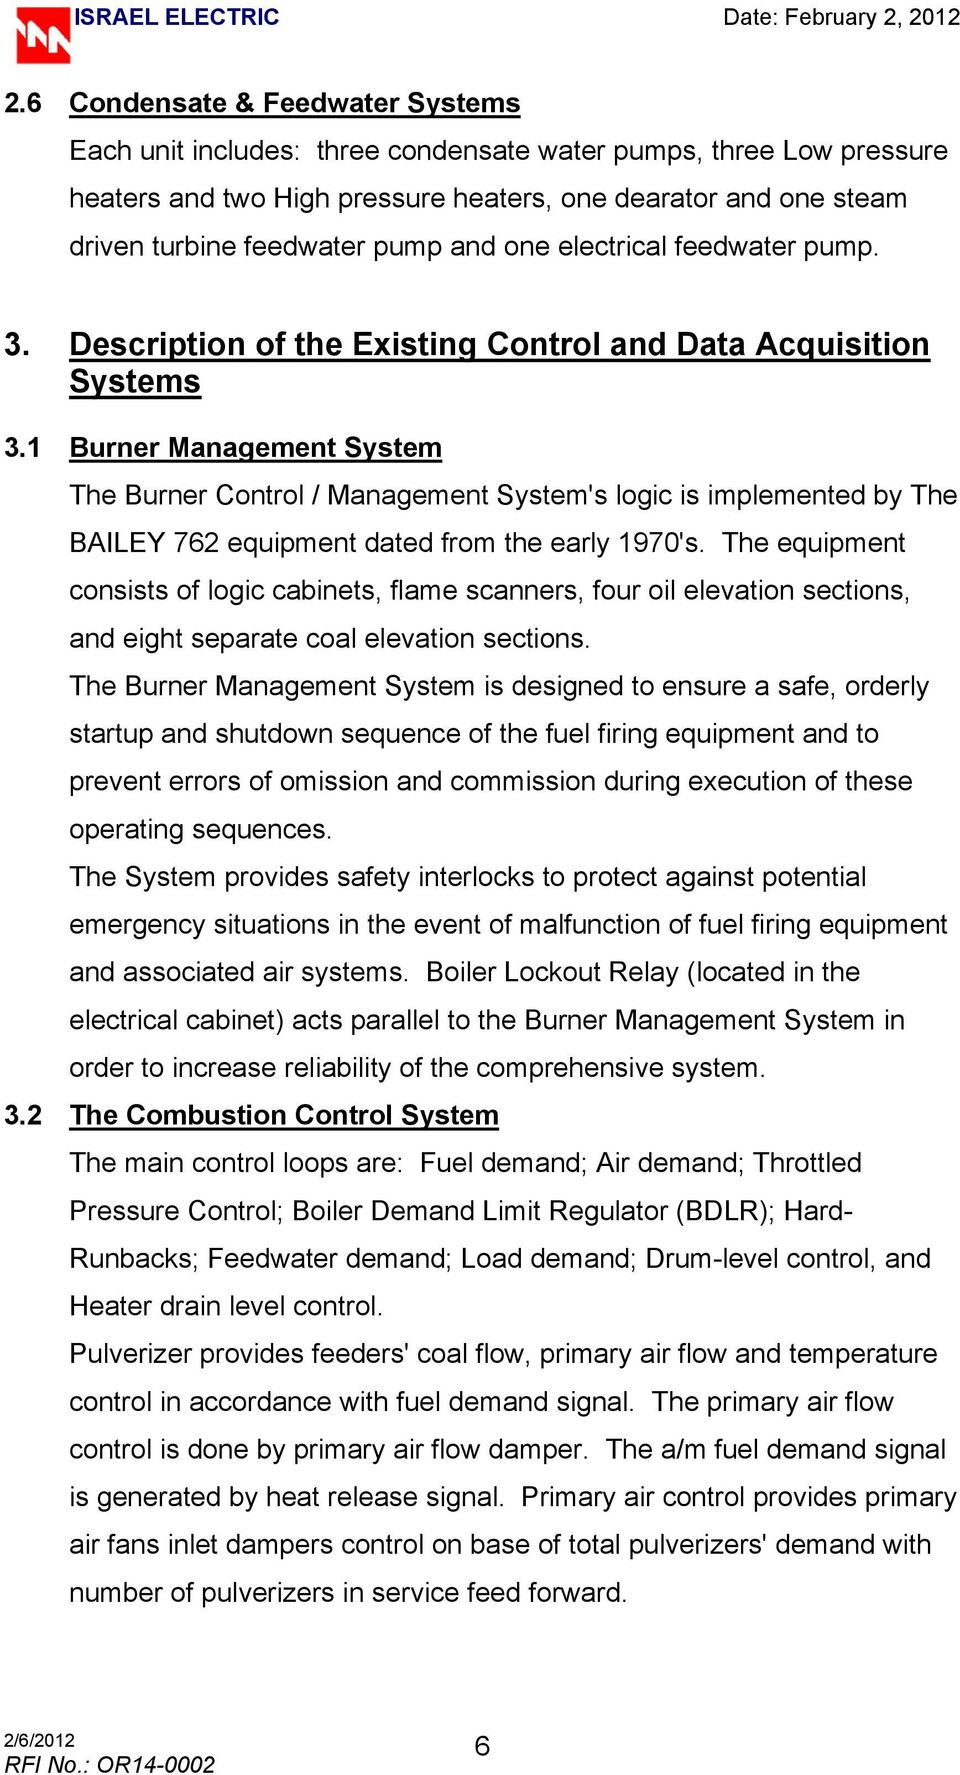 1 Burner Management System The Burner Control / Management System's logic is implemented by The BAILEY 762 equipment dated from the early 1970's.